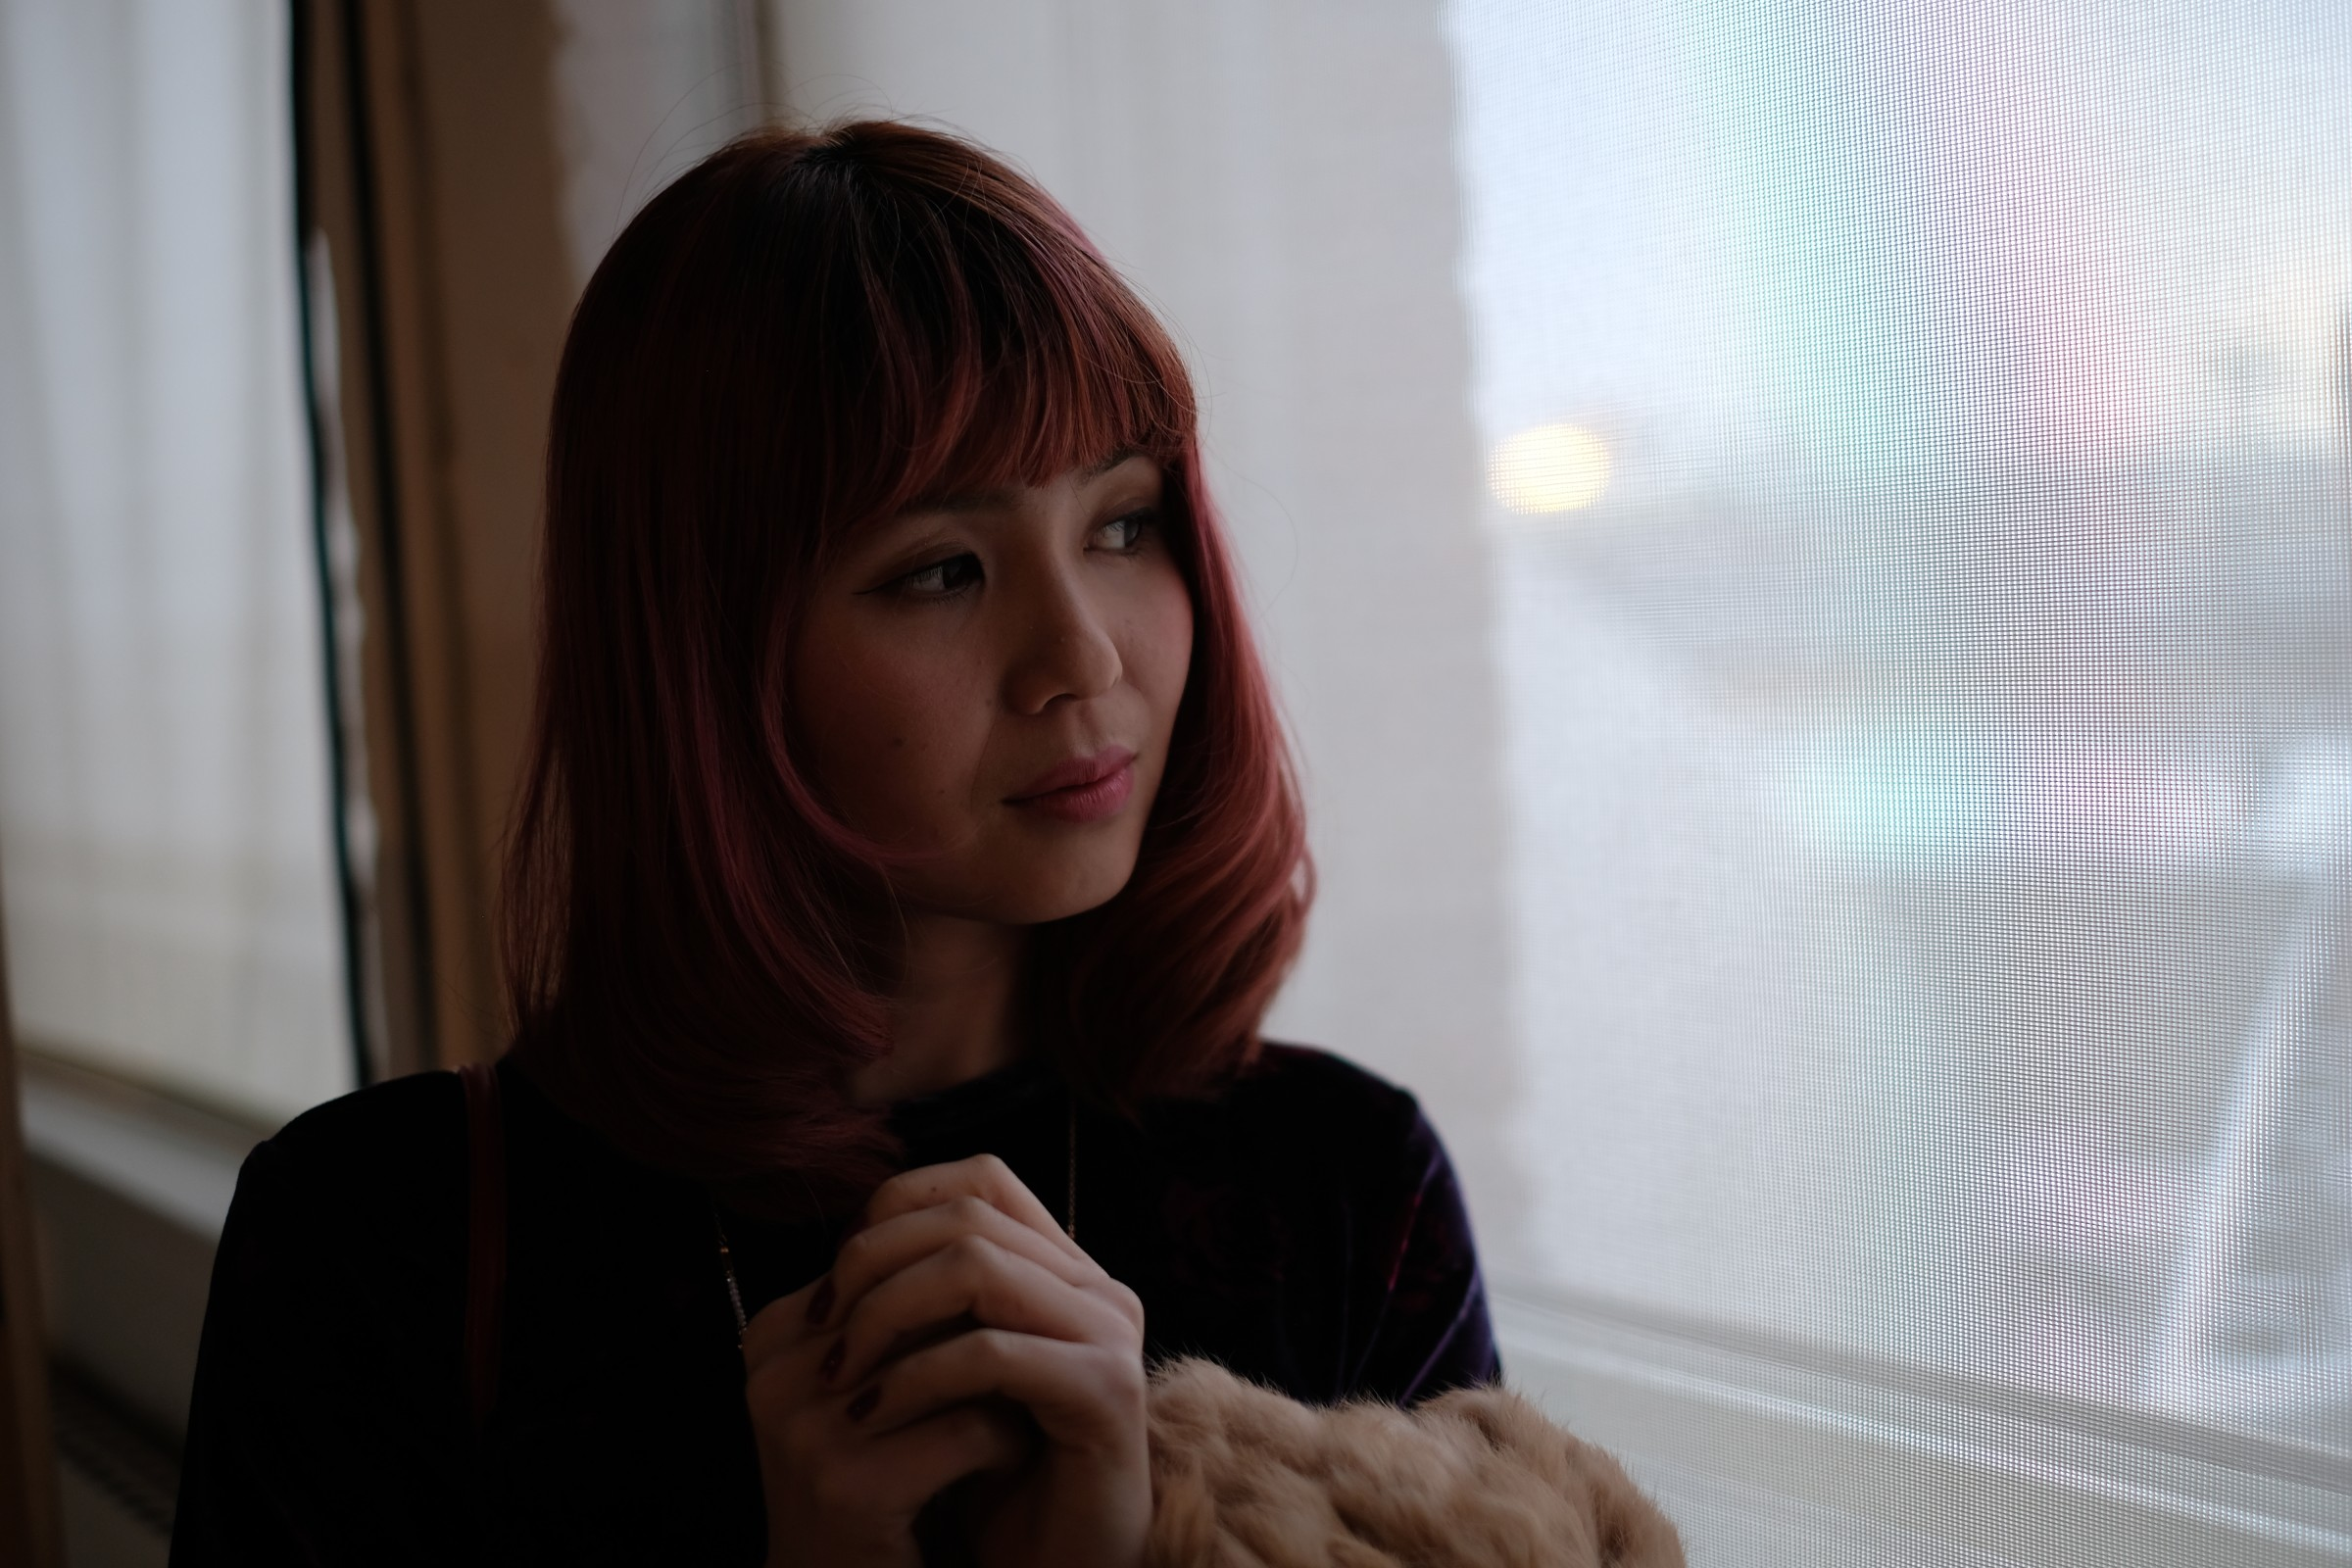 Asian girl by a window